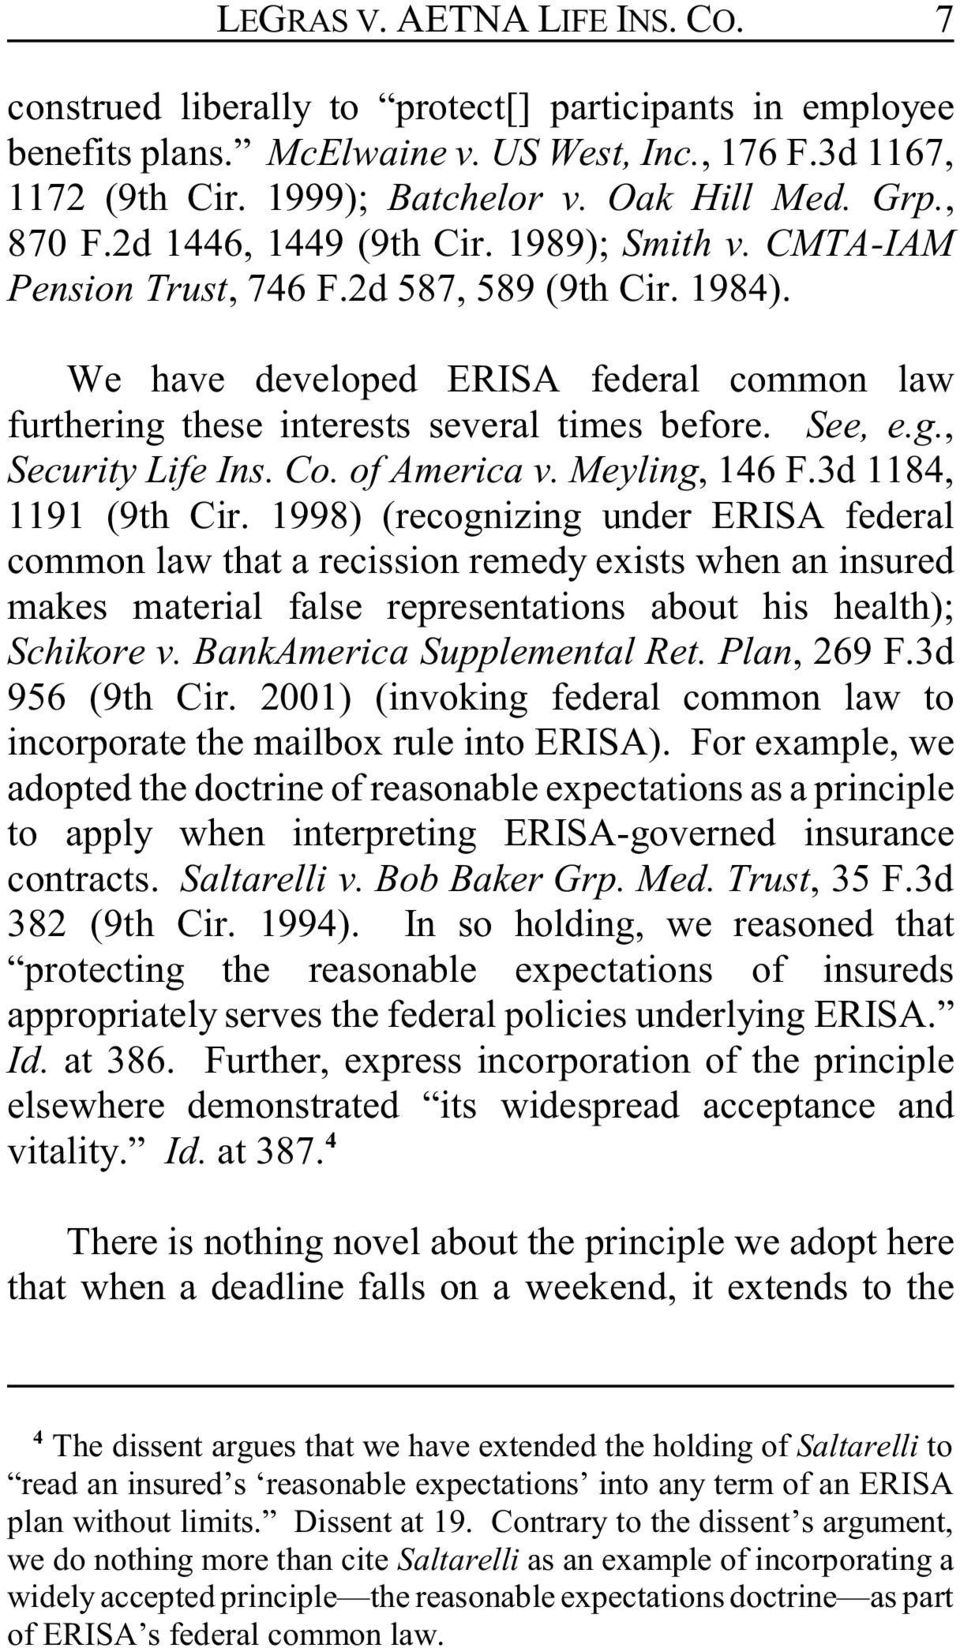 We have developed ERISA federal common law furthering these interests several times before. See, e.g., Security Life Ins. Co. of America v. Meyling, 146 F.3d 1184, 1191 (9th Cir.